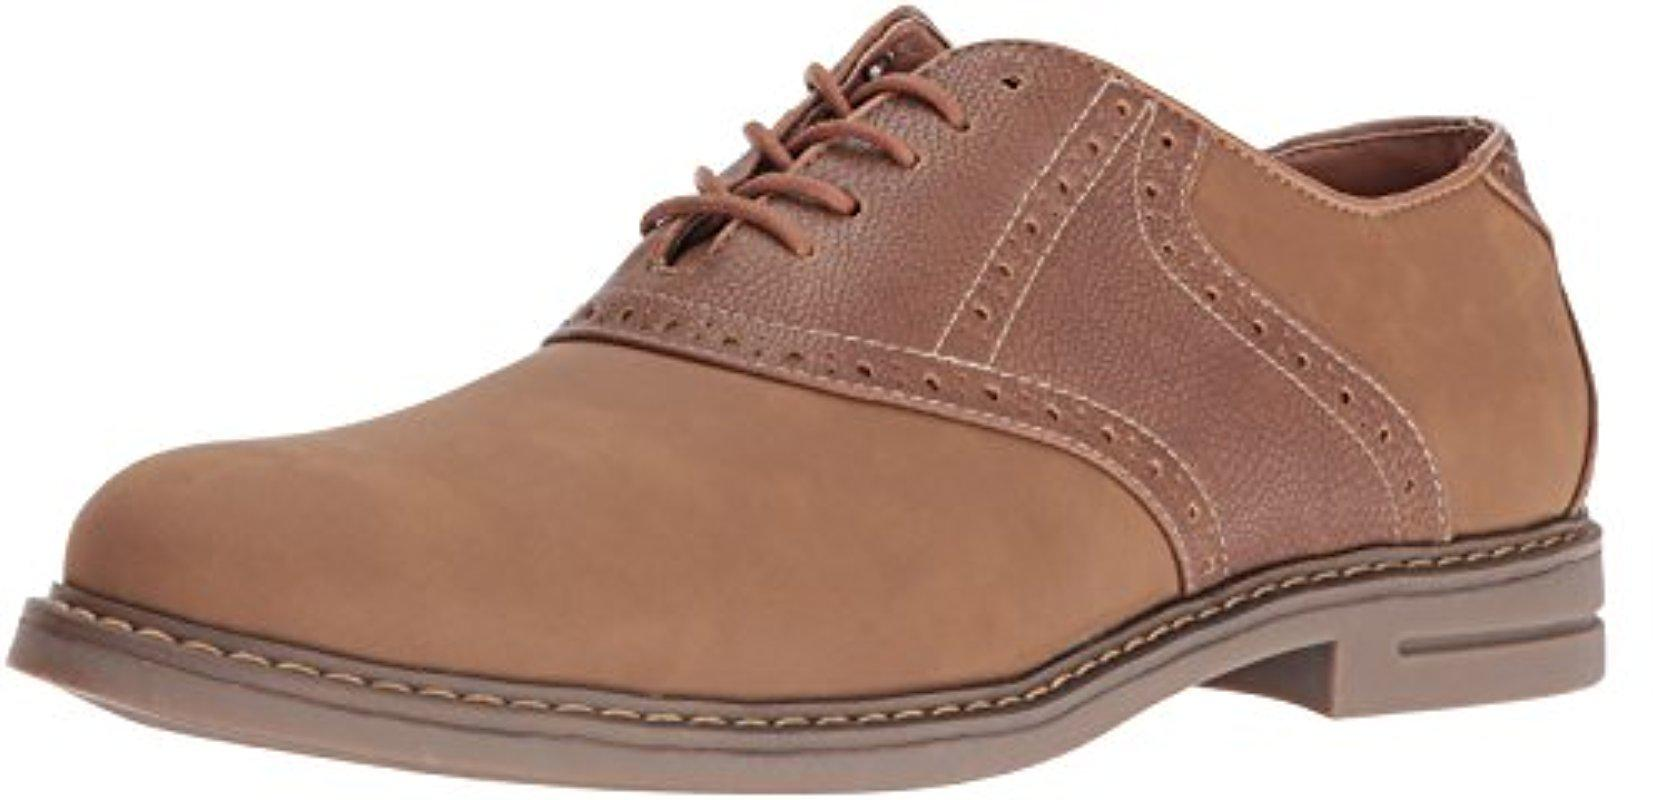 Lyst - Izod Classic-s Oxford in Brown for Men - Save 30%